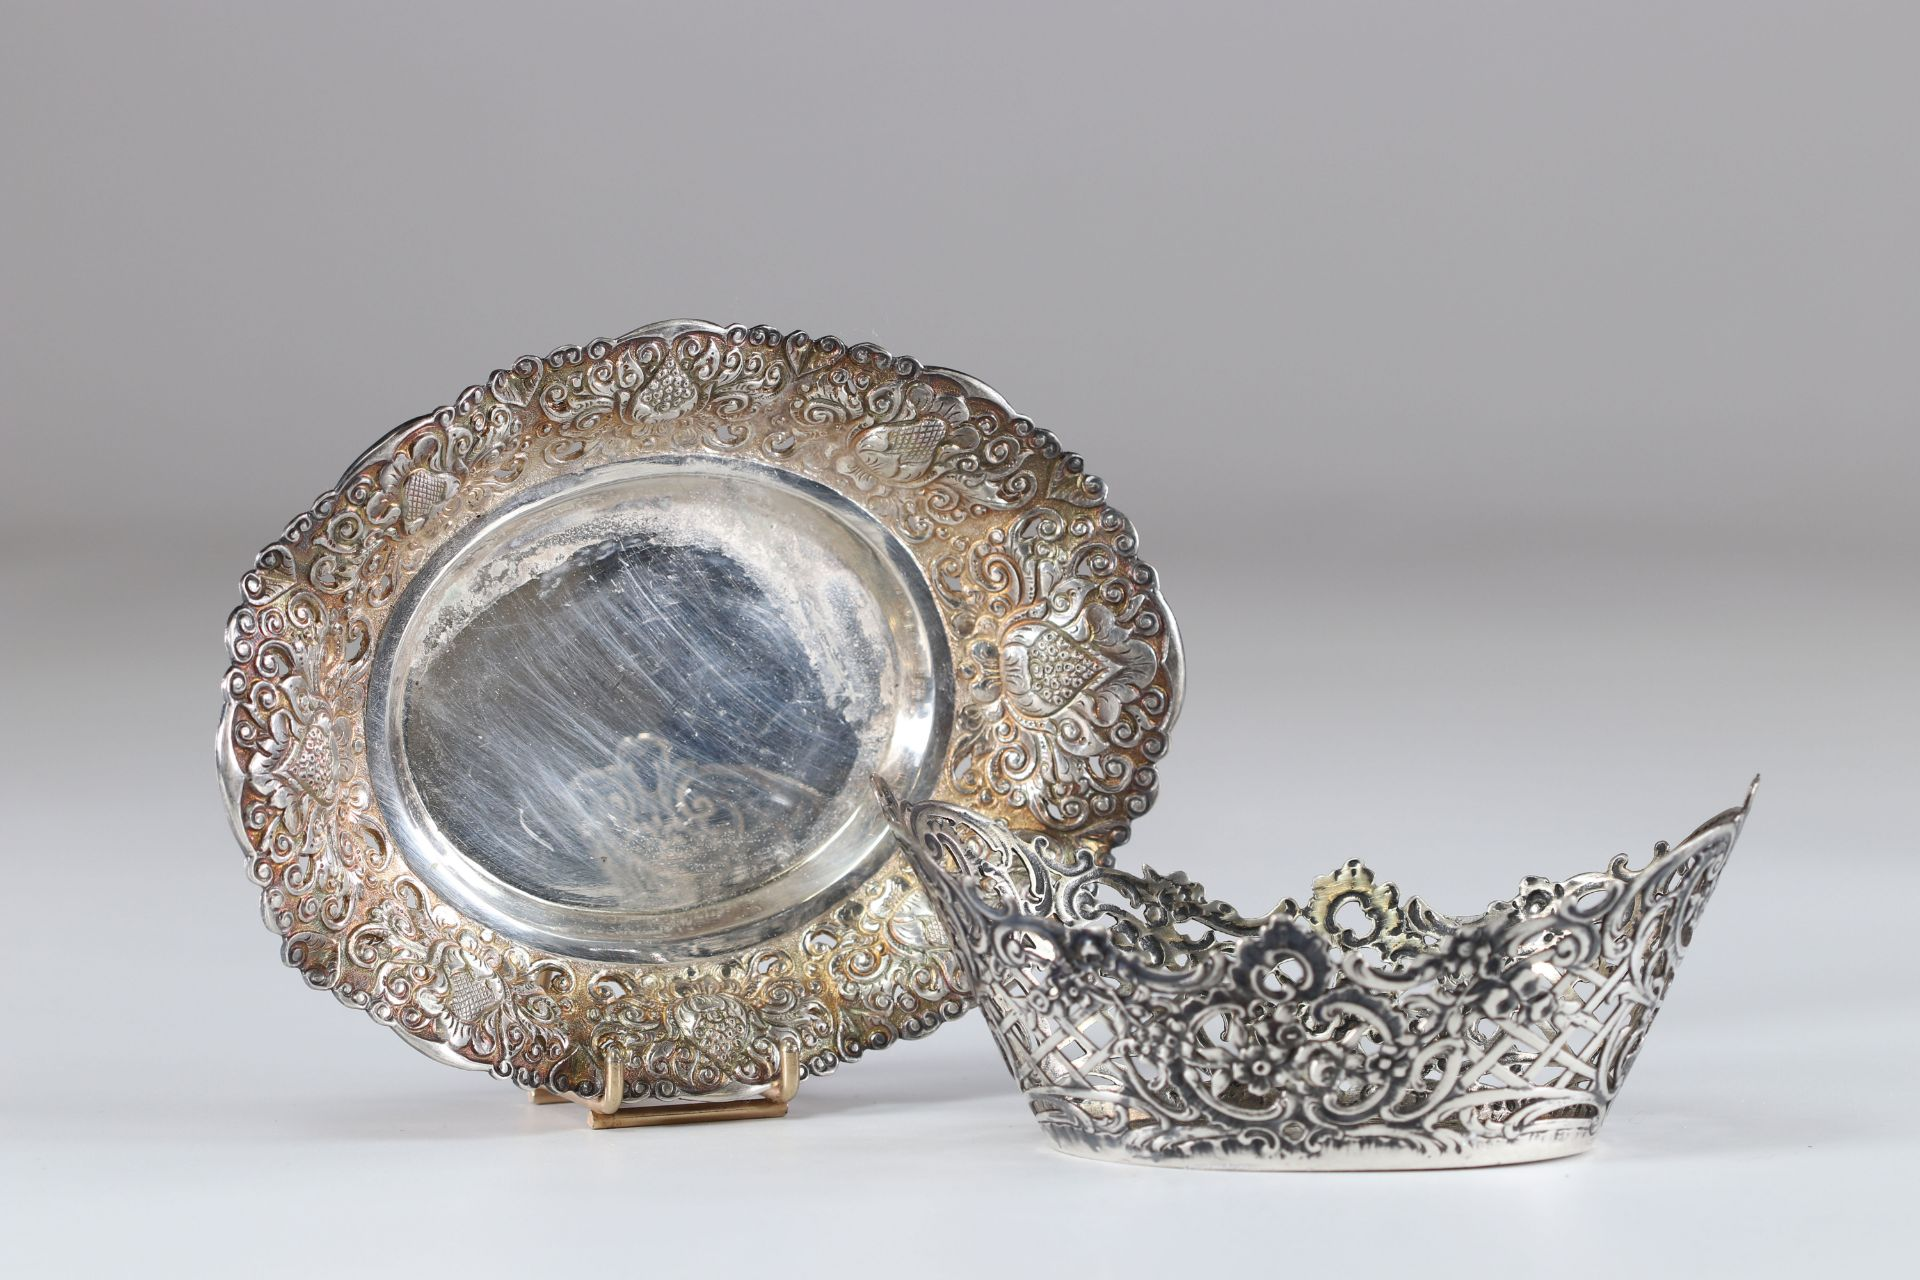 Louis XV style silver cup and dish - Image 2 of 2